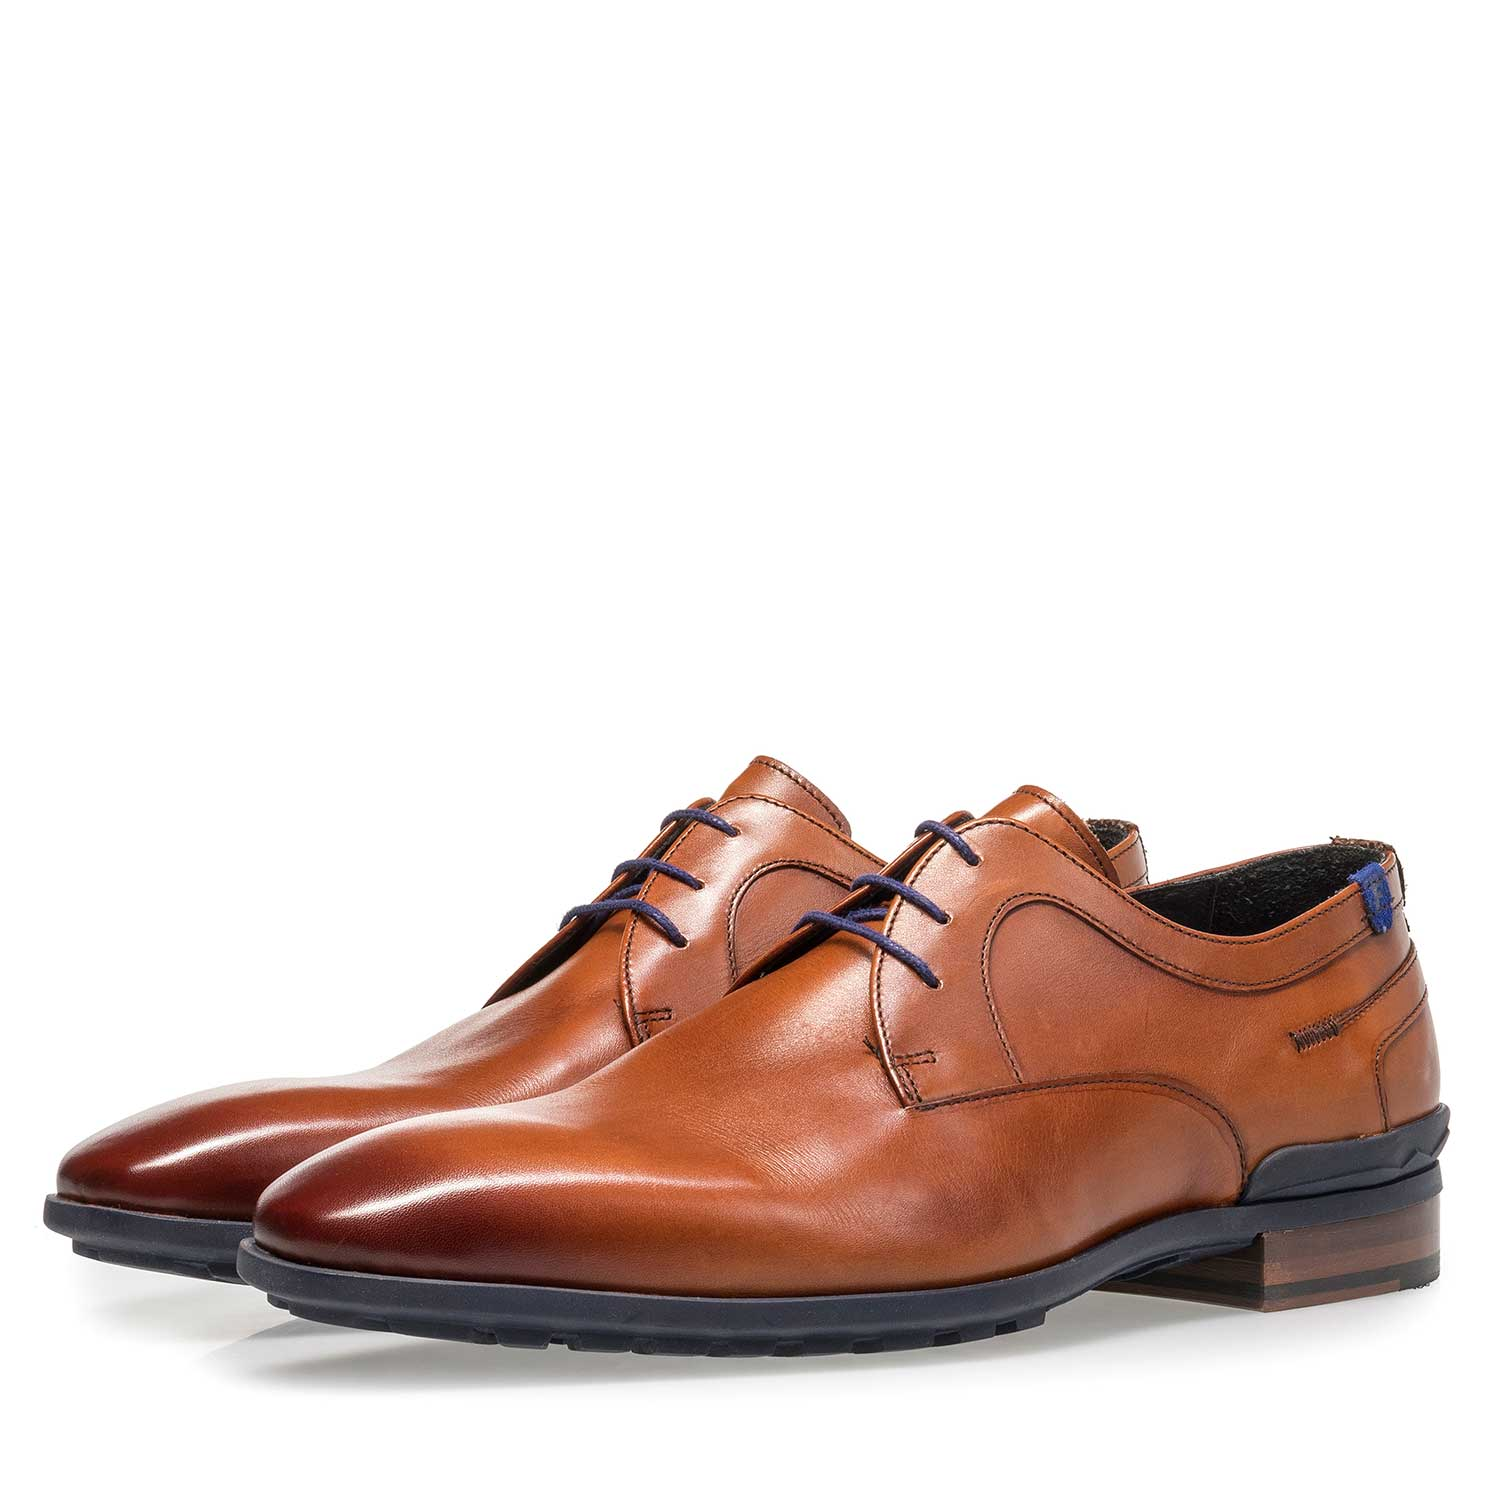 18429/00 - Dark cognac-coloured calf leather lace shoe